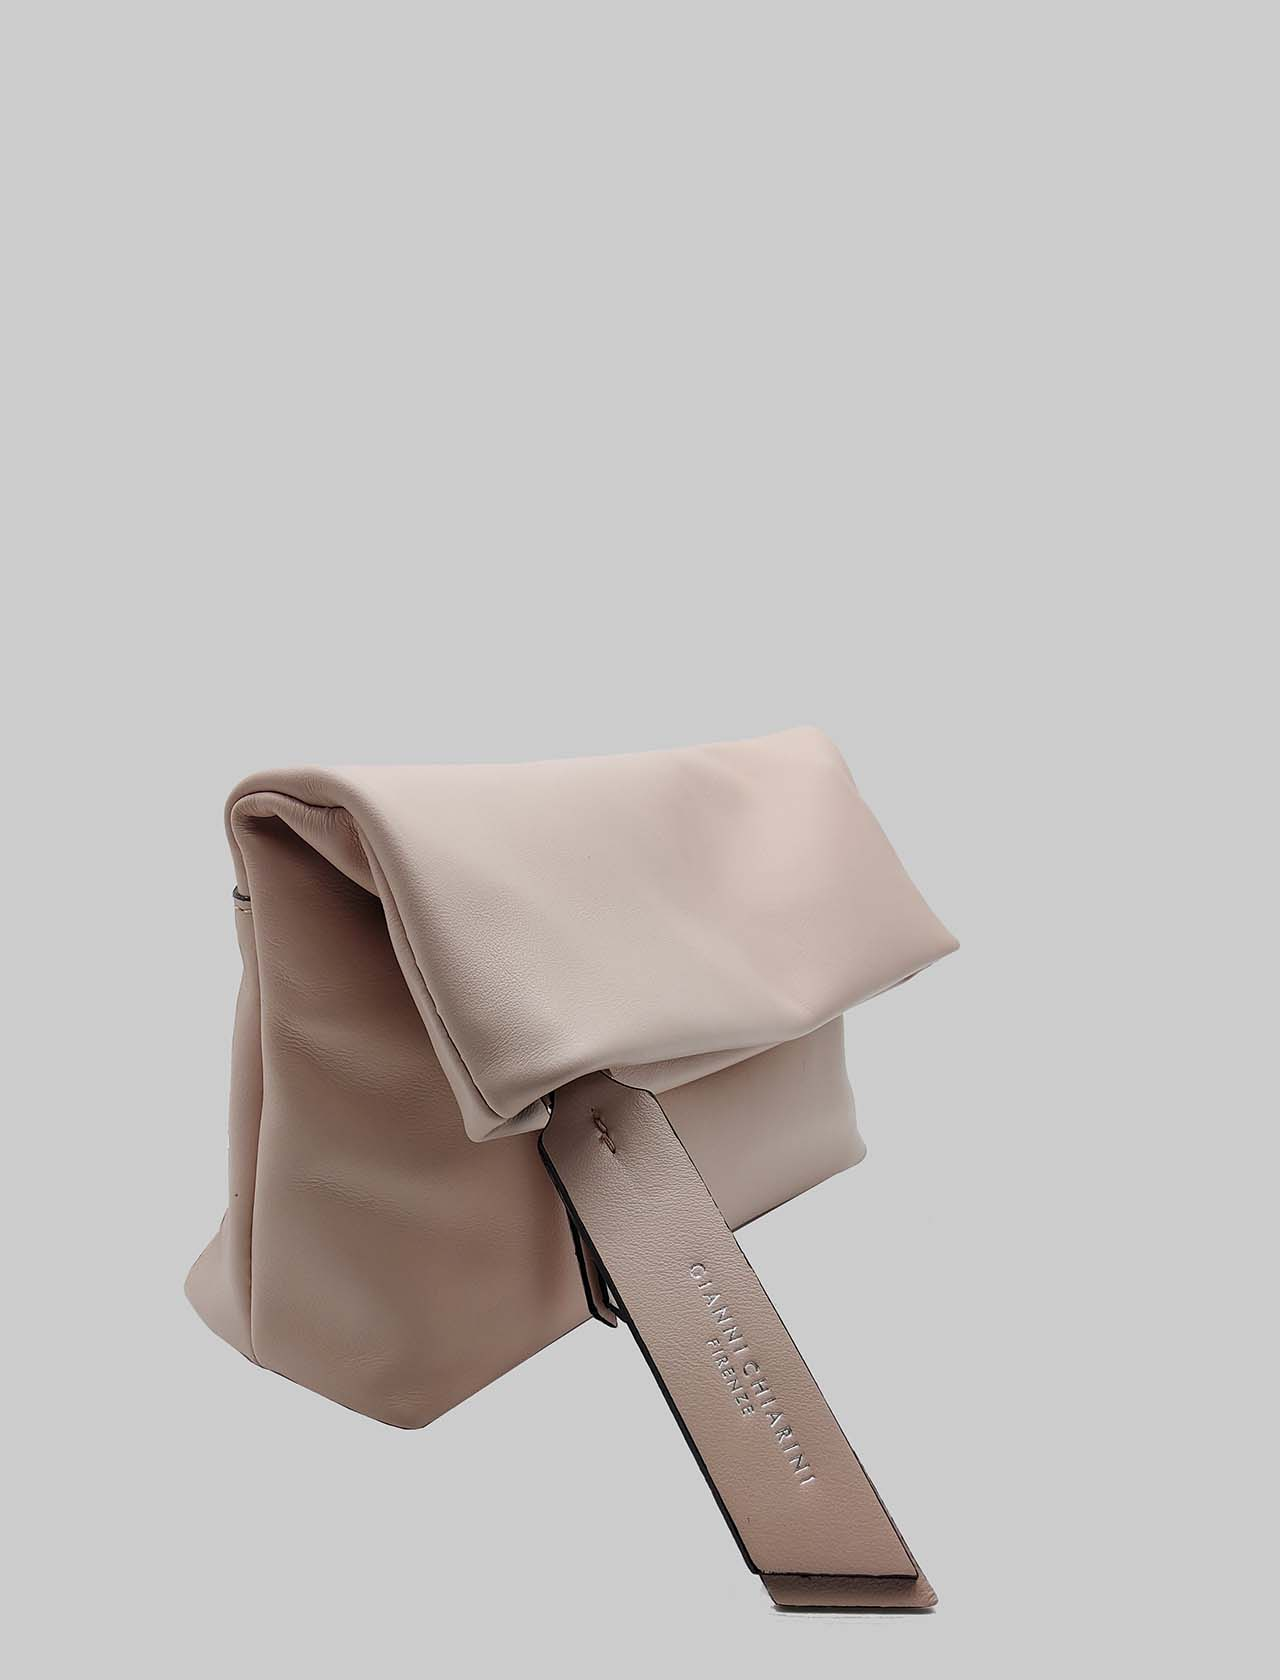 Cherry women's large clutch in powder pink smooth leather with removable shoulder strap Gianni Chiarini   Bags and backpacks   BS737710105